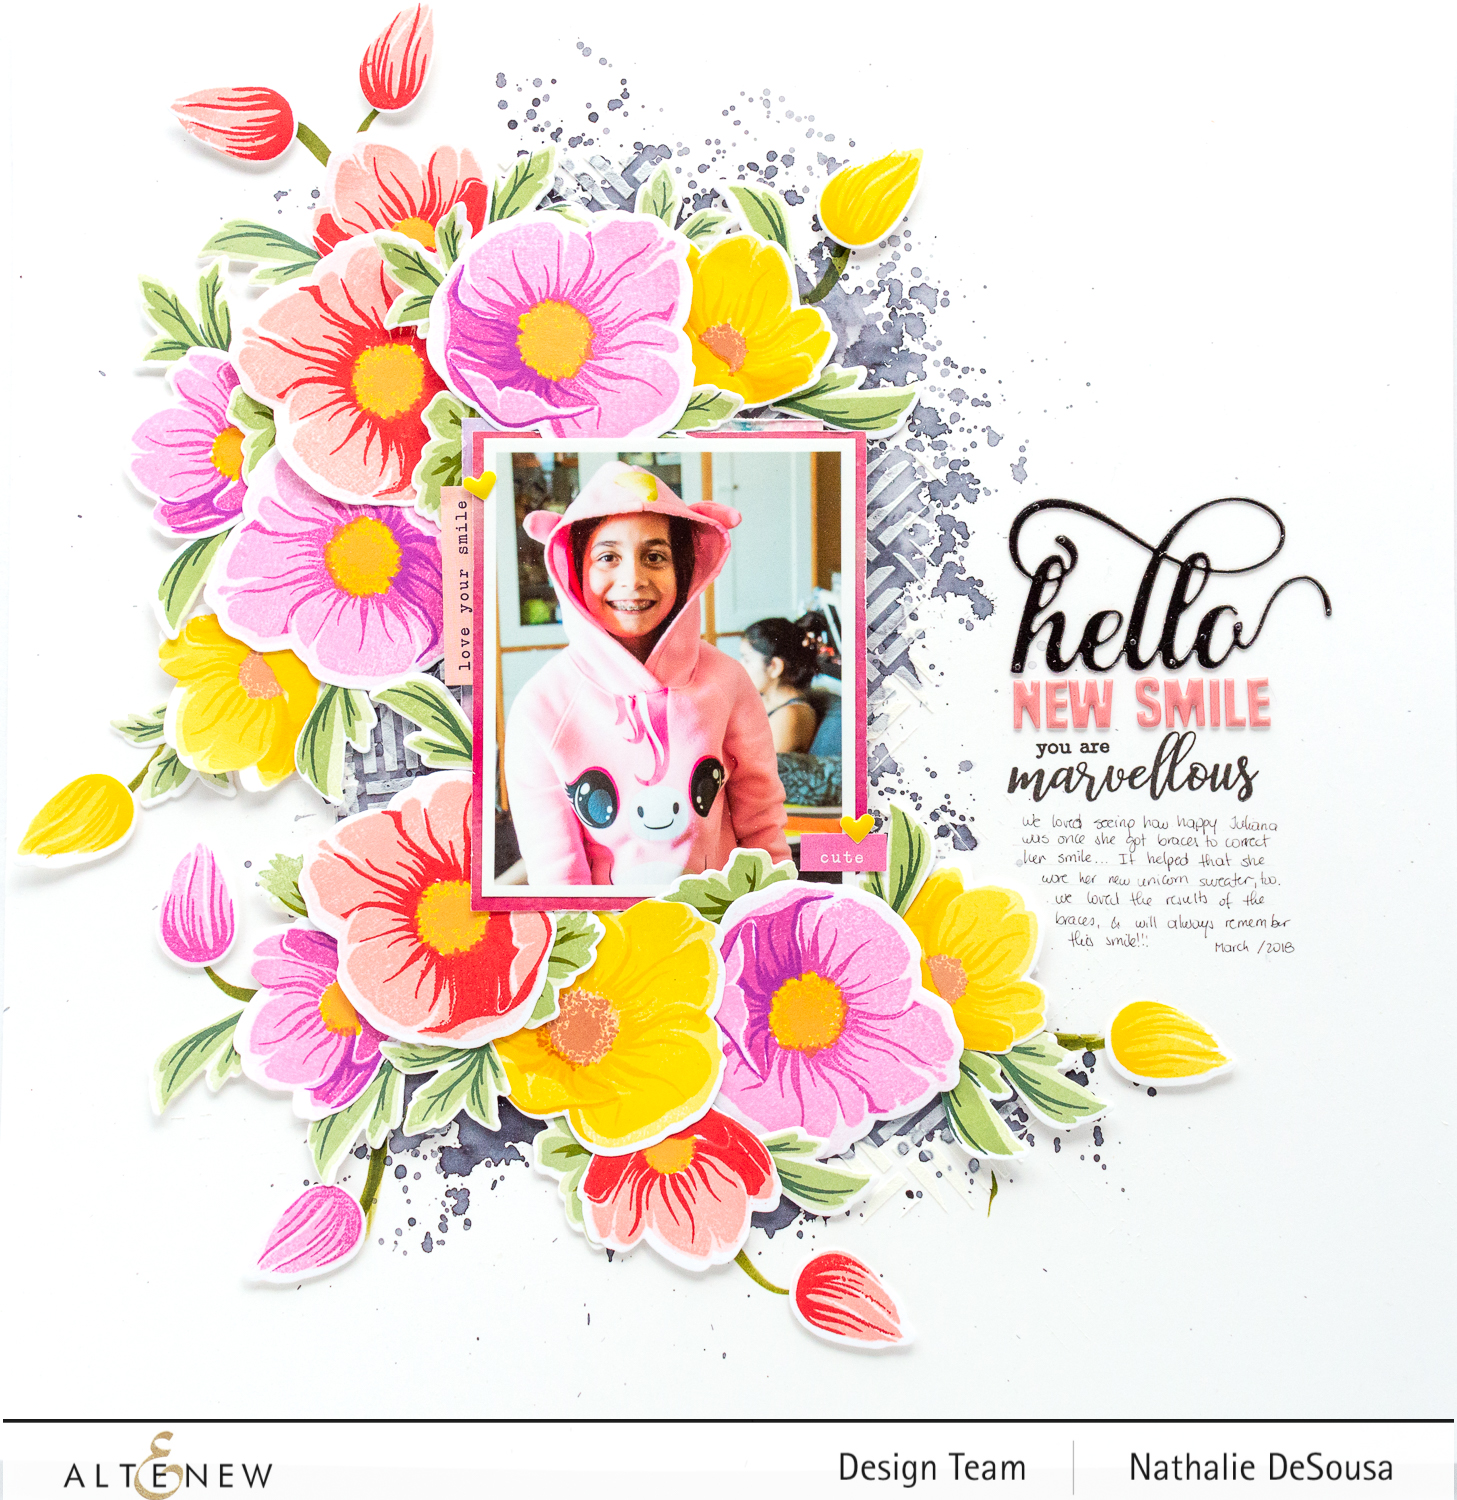 @altenew- contrasting colors in a scrapbook layout using BAF: Hellebore by Nathalie DeSousa